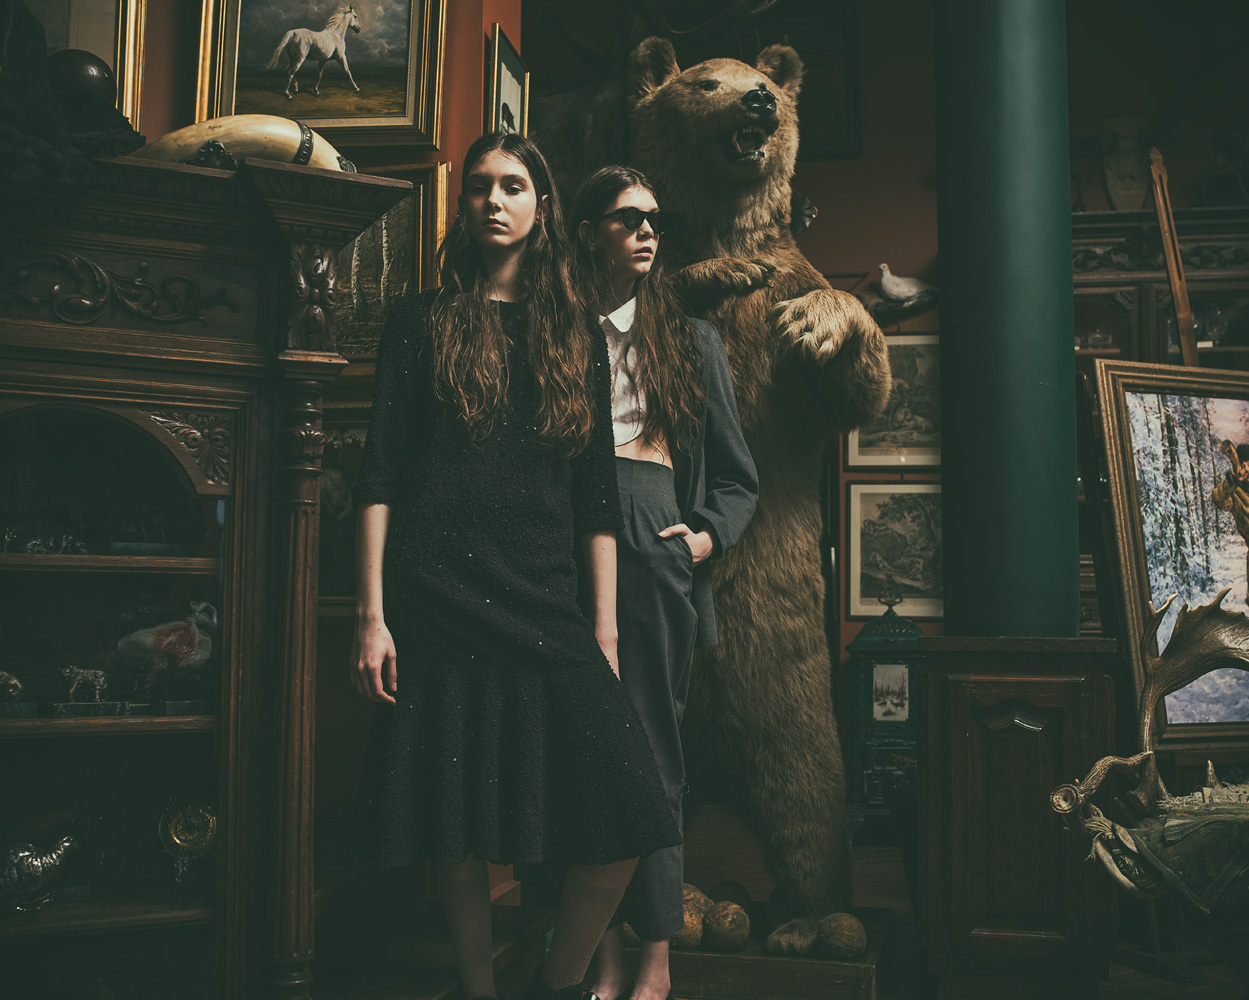 SISTERS by Zija and Pioro for CHASSEUR MAGAZINE